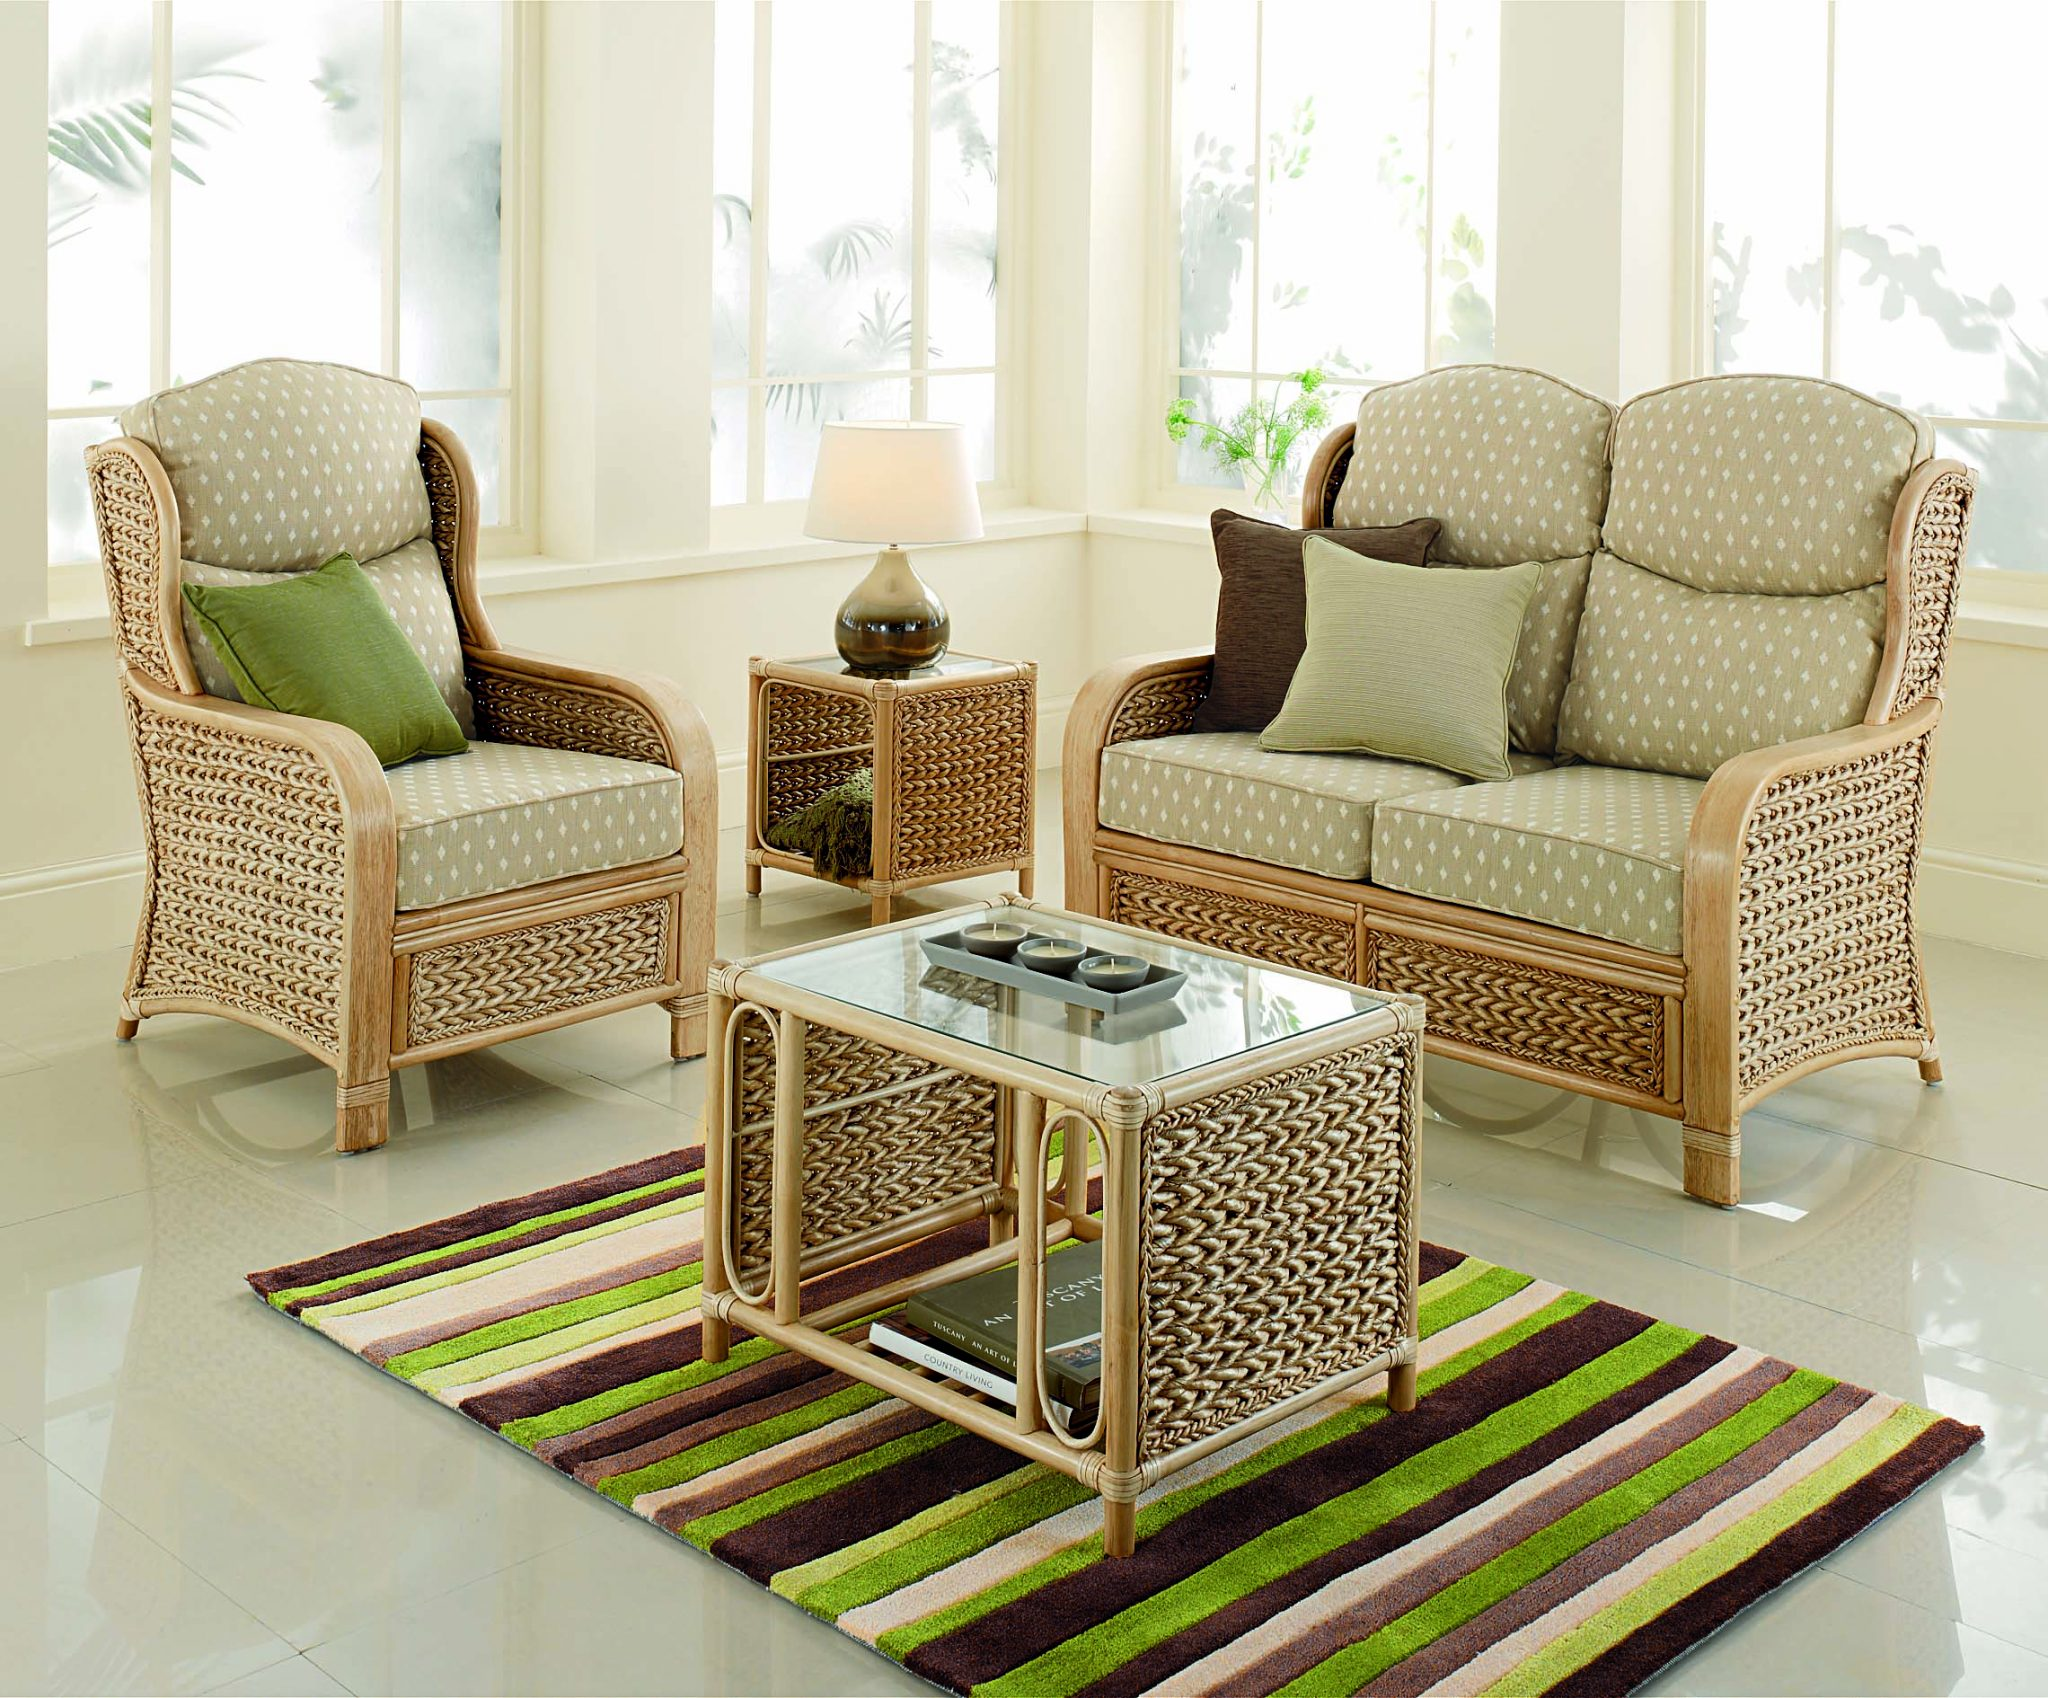 Reef Wicker Cane Rattan Conservatory Furniture Swivel